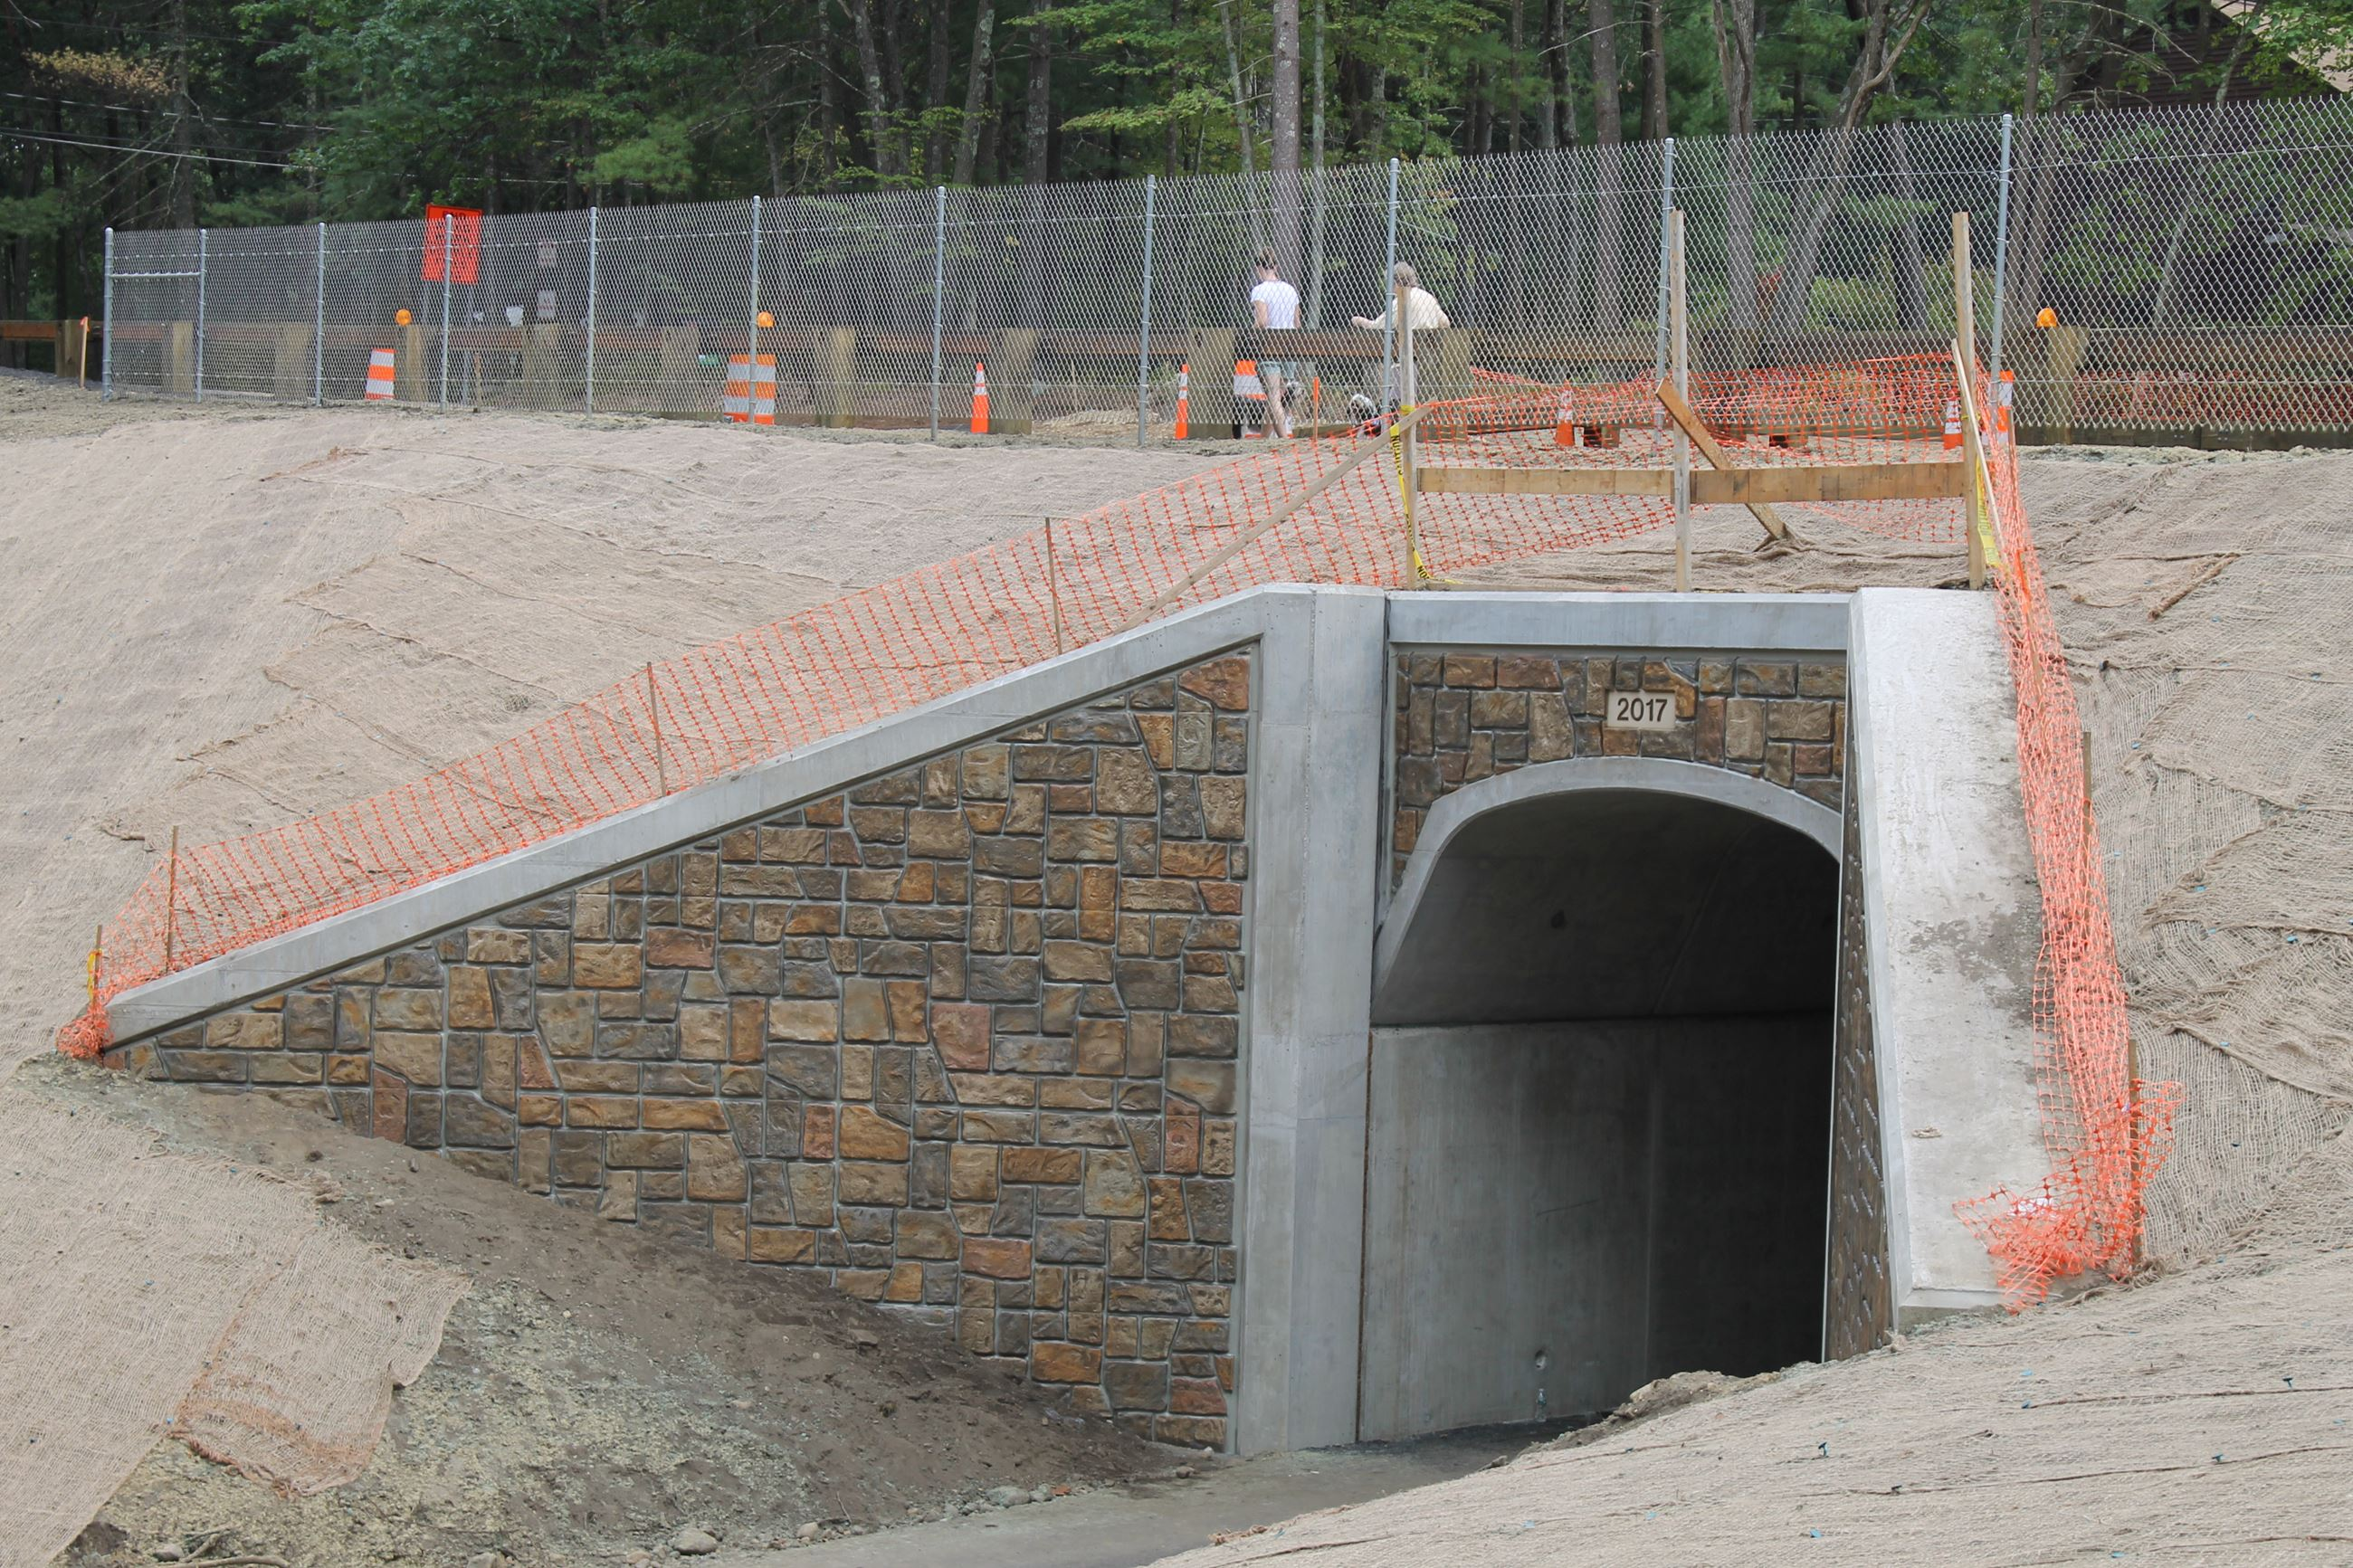 BFRT – Powder Mill Road tunnel painting completed 9/14/17